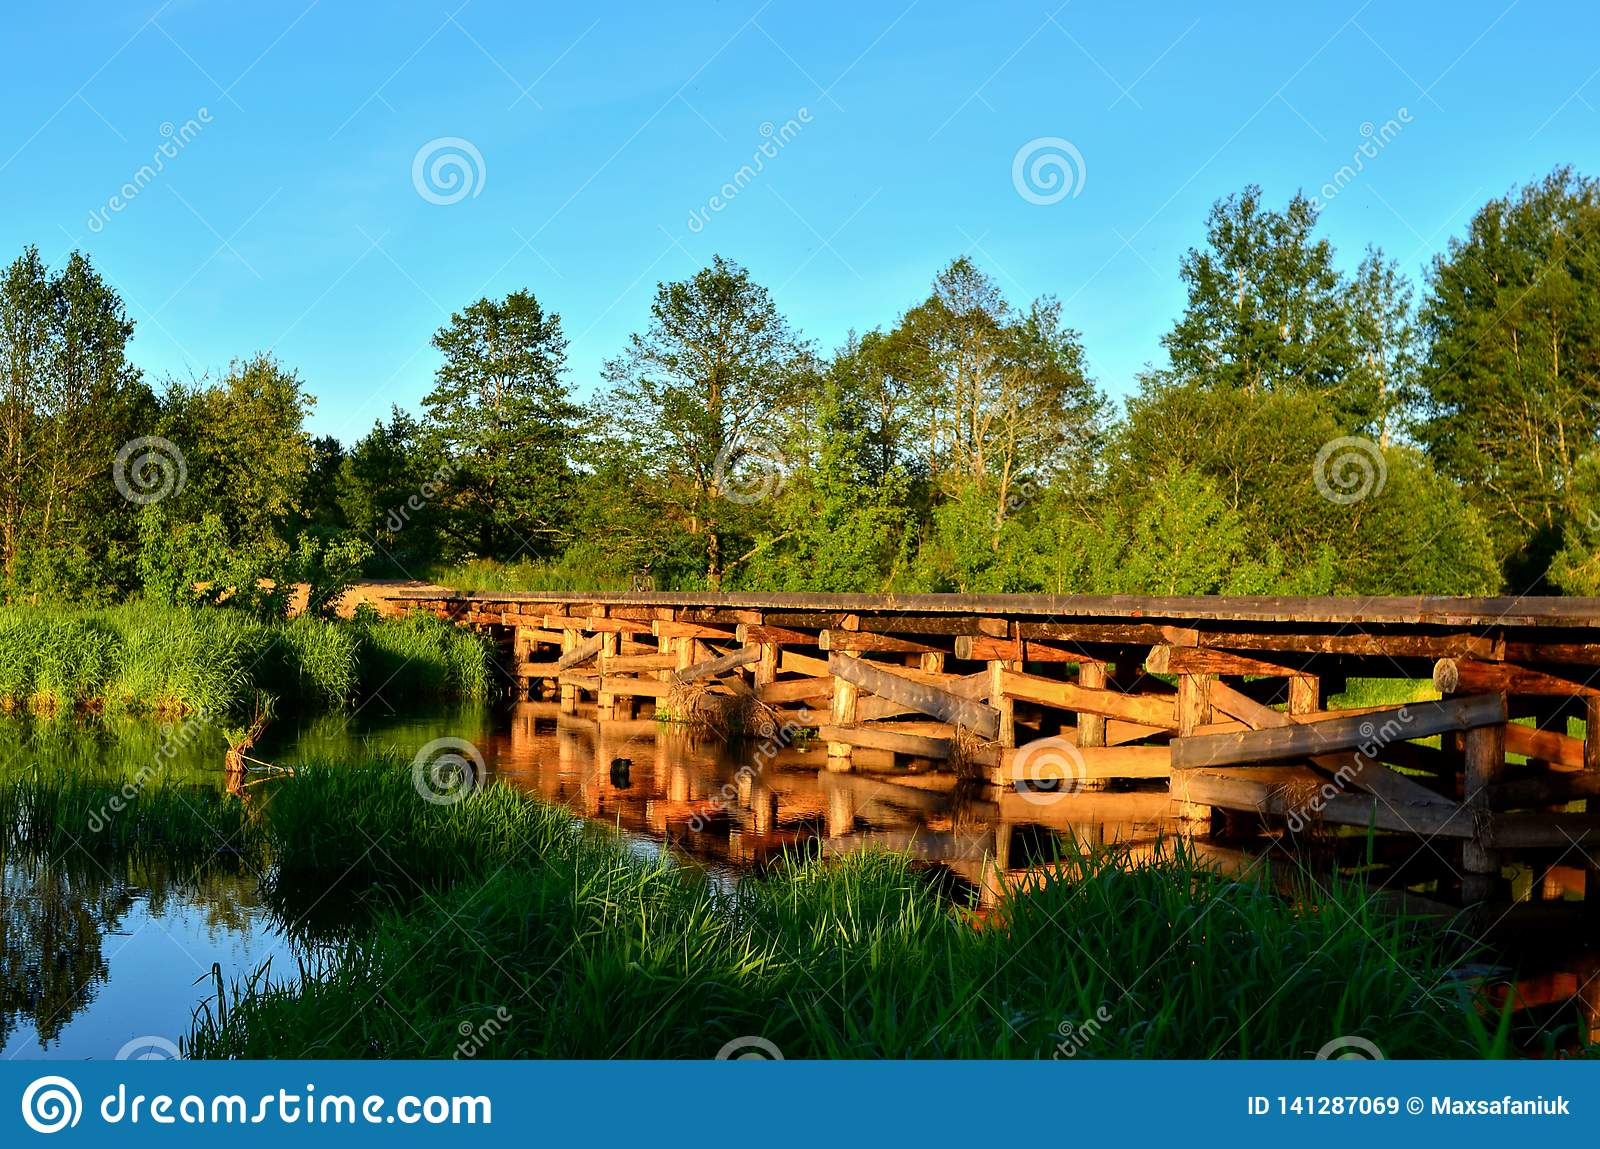 A wooden bridge of tree logs lies across a small river inside a wooded area among green nature.